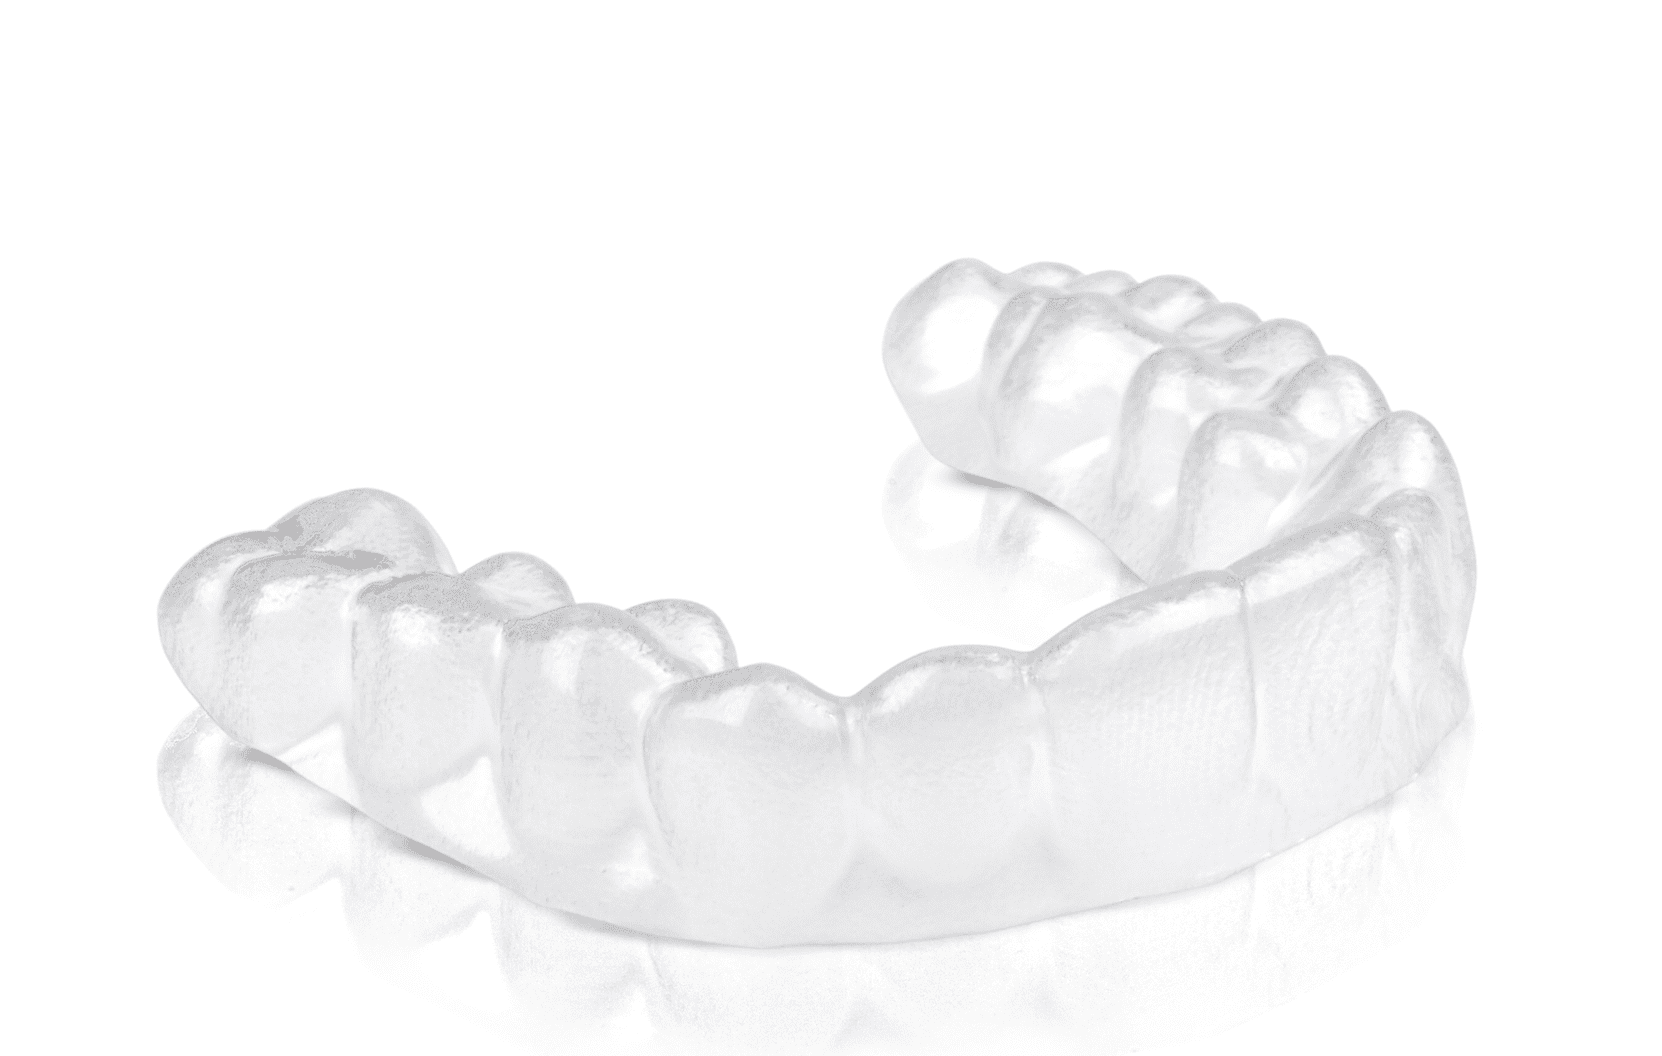 Candid Clear Aligner Treatment